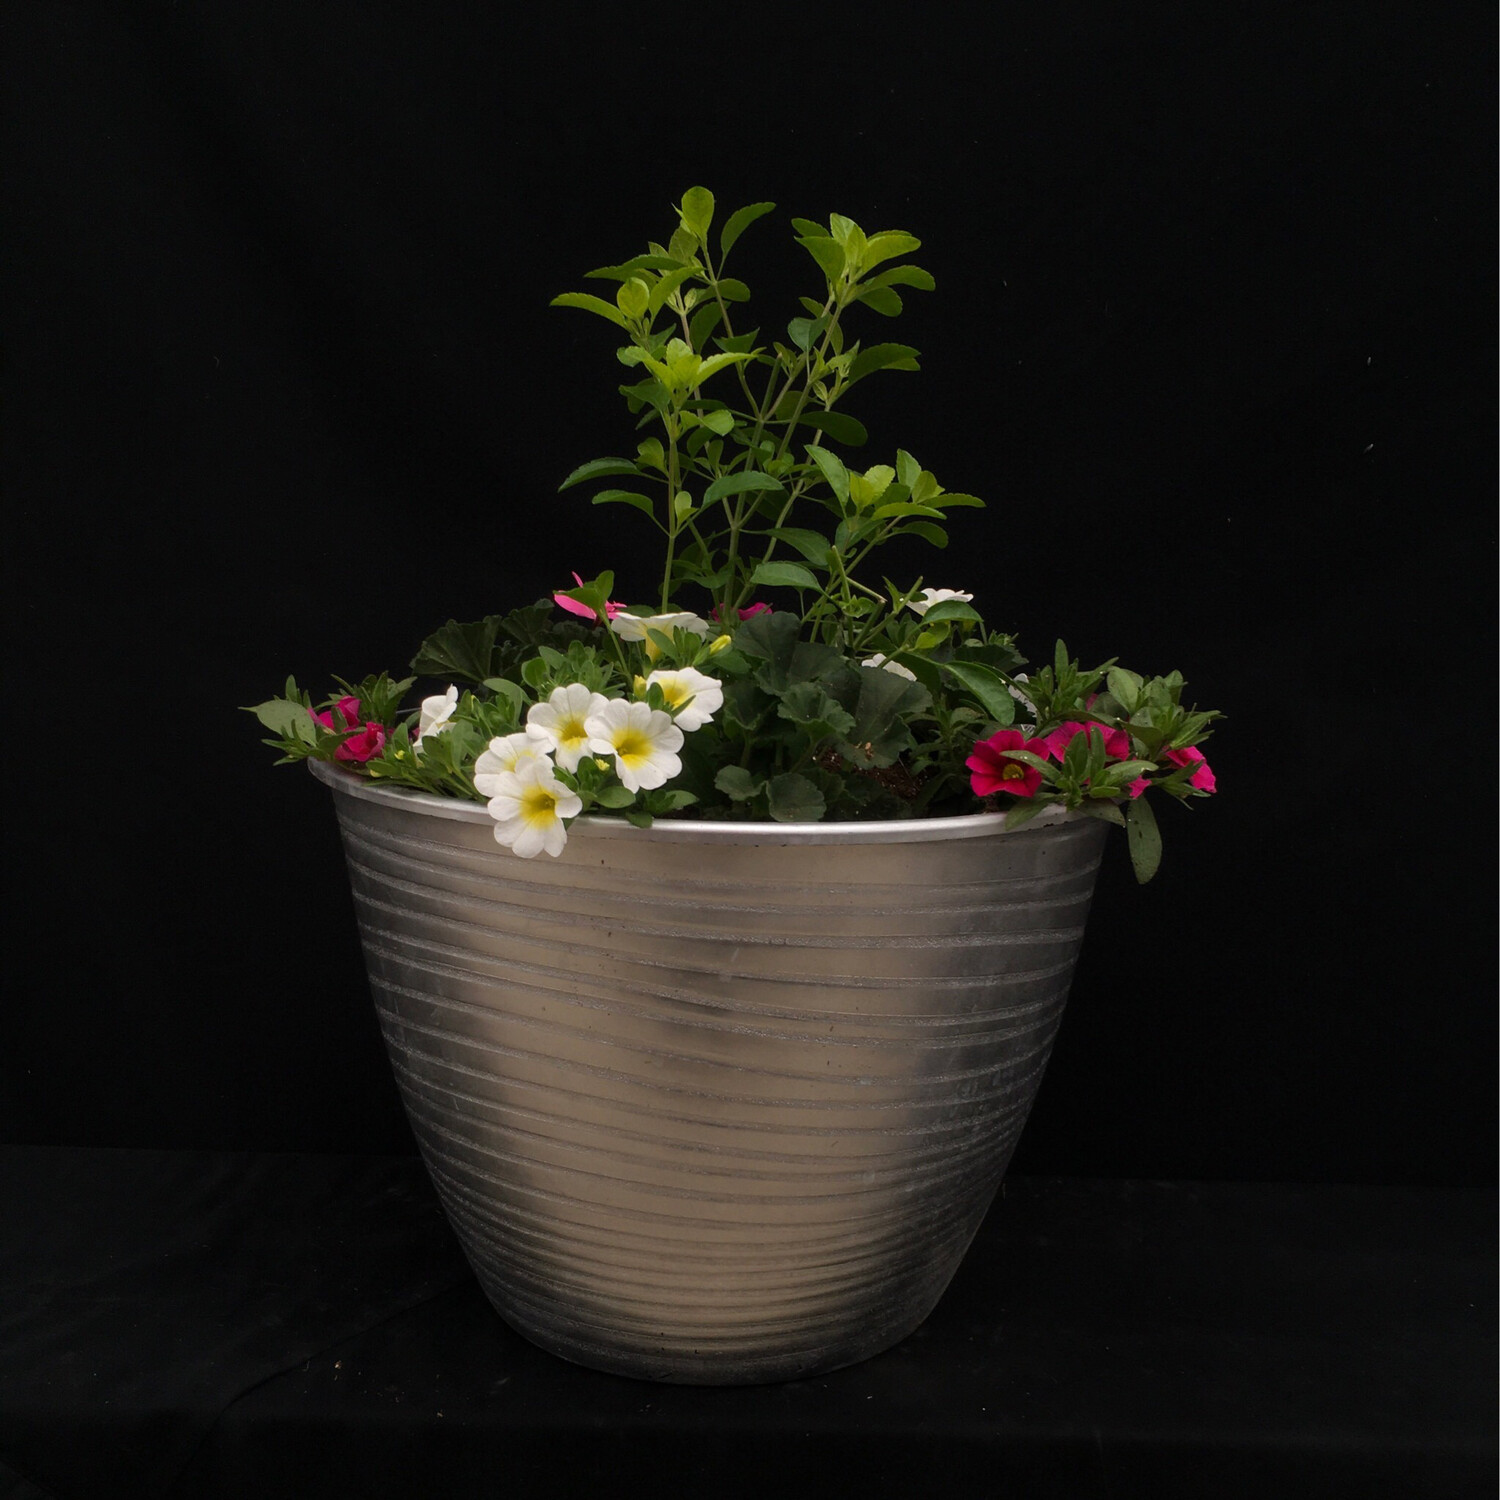 Silver Planter With Pink and White Flowers - Full Sun